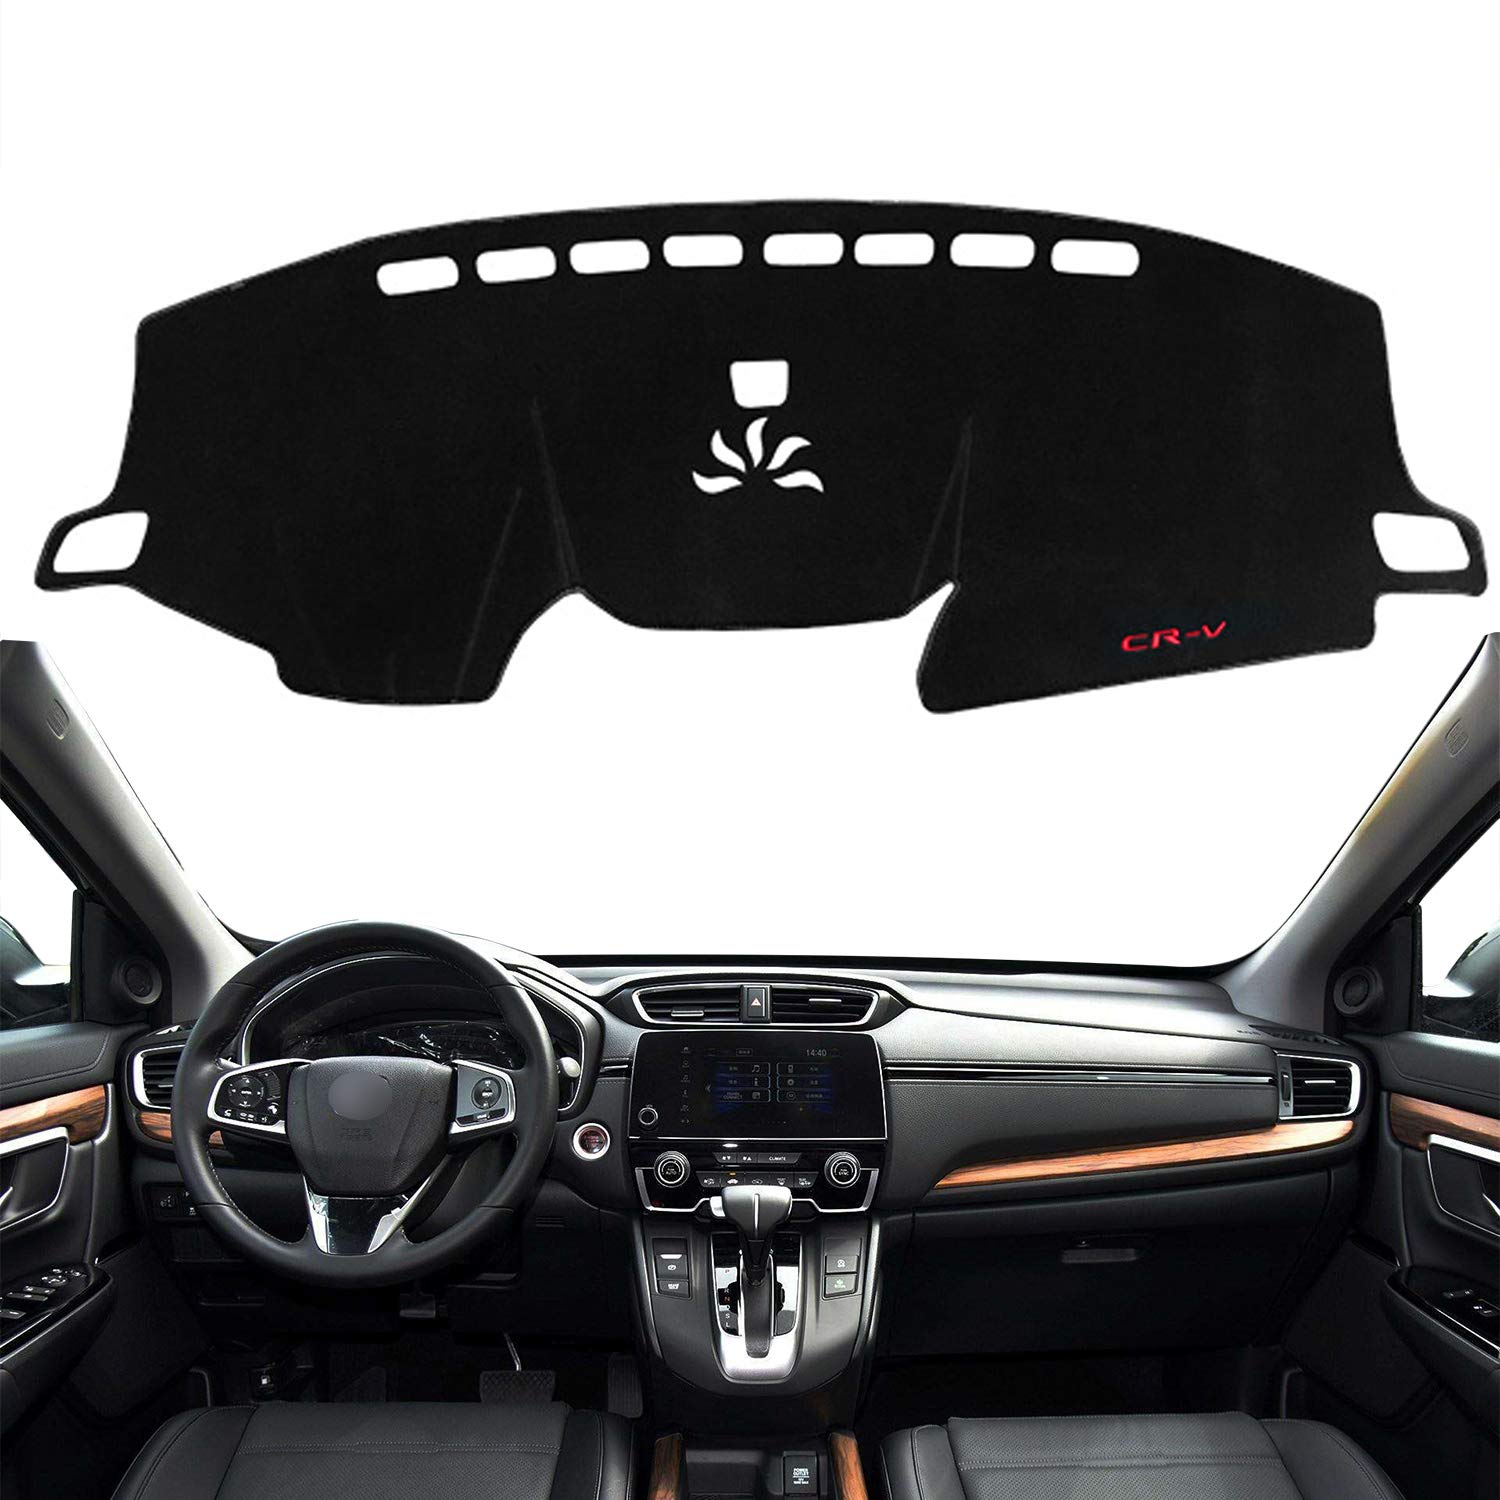 Autoxrun Dashboard Carpet Center Console Cover Dash Mat Protector Sunshield Cover Fits 2017 2018 Honda CRV